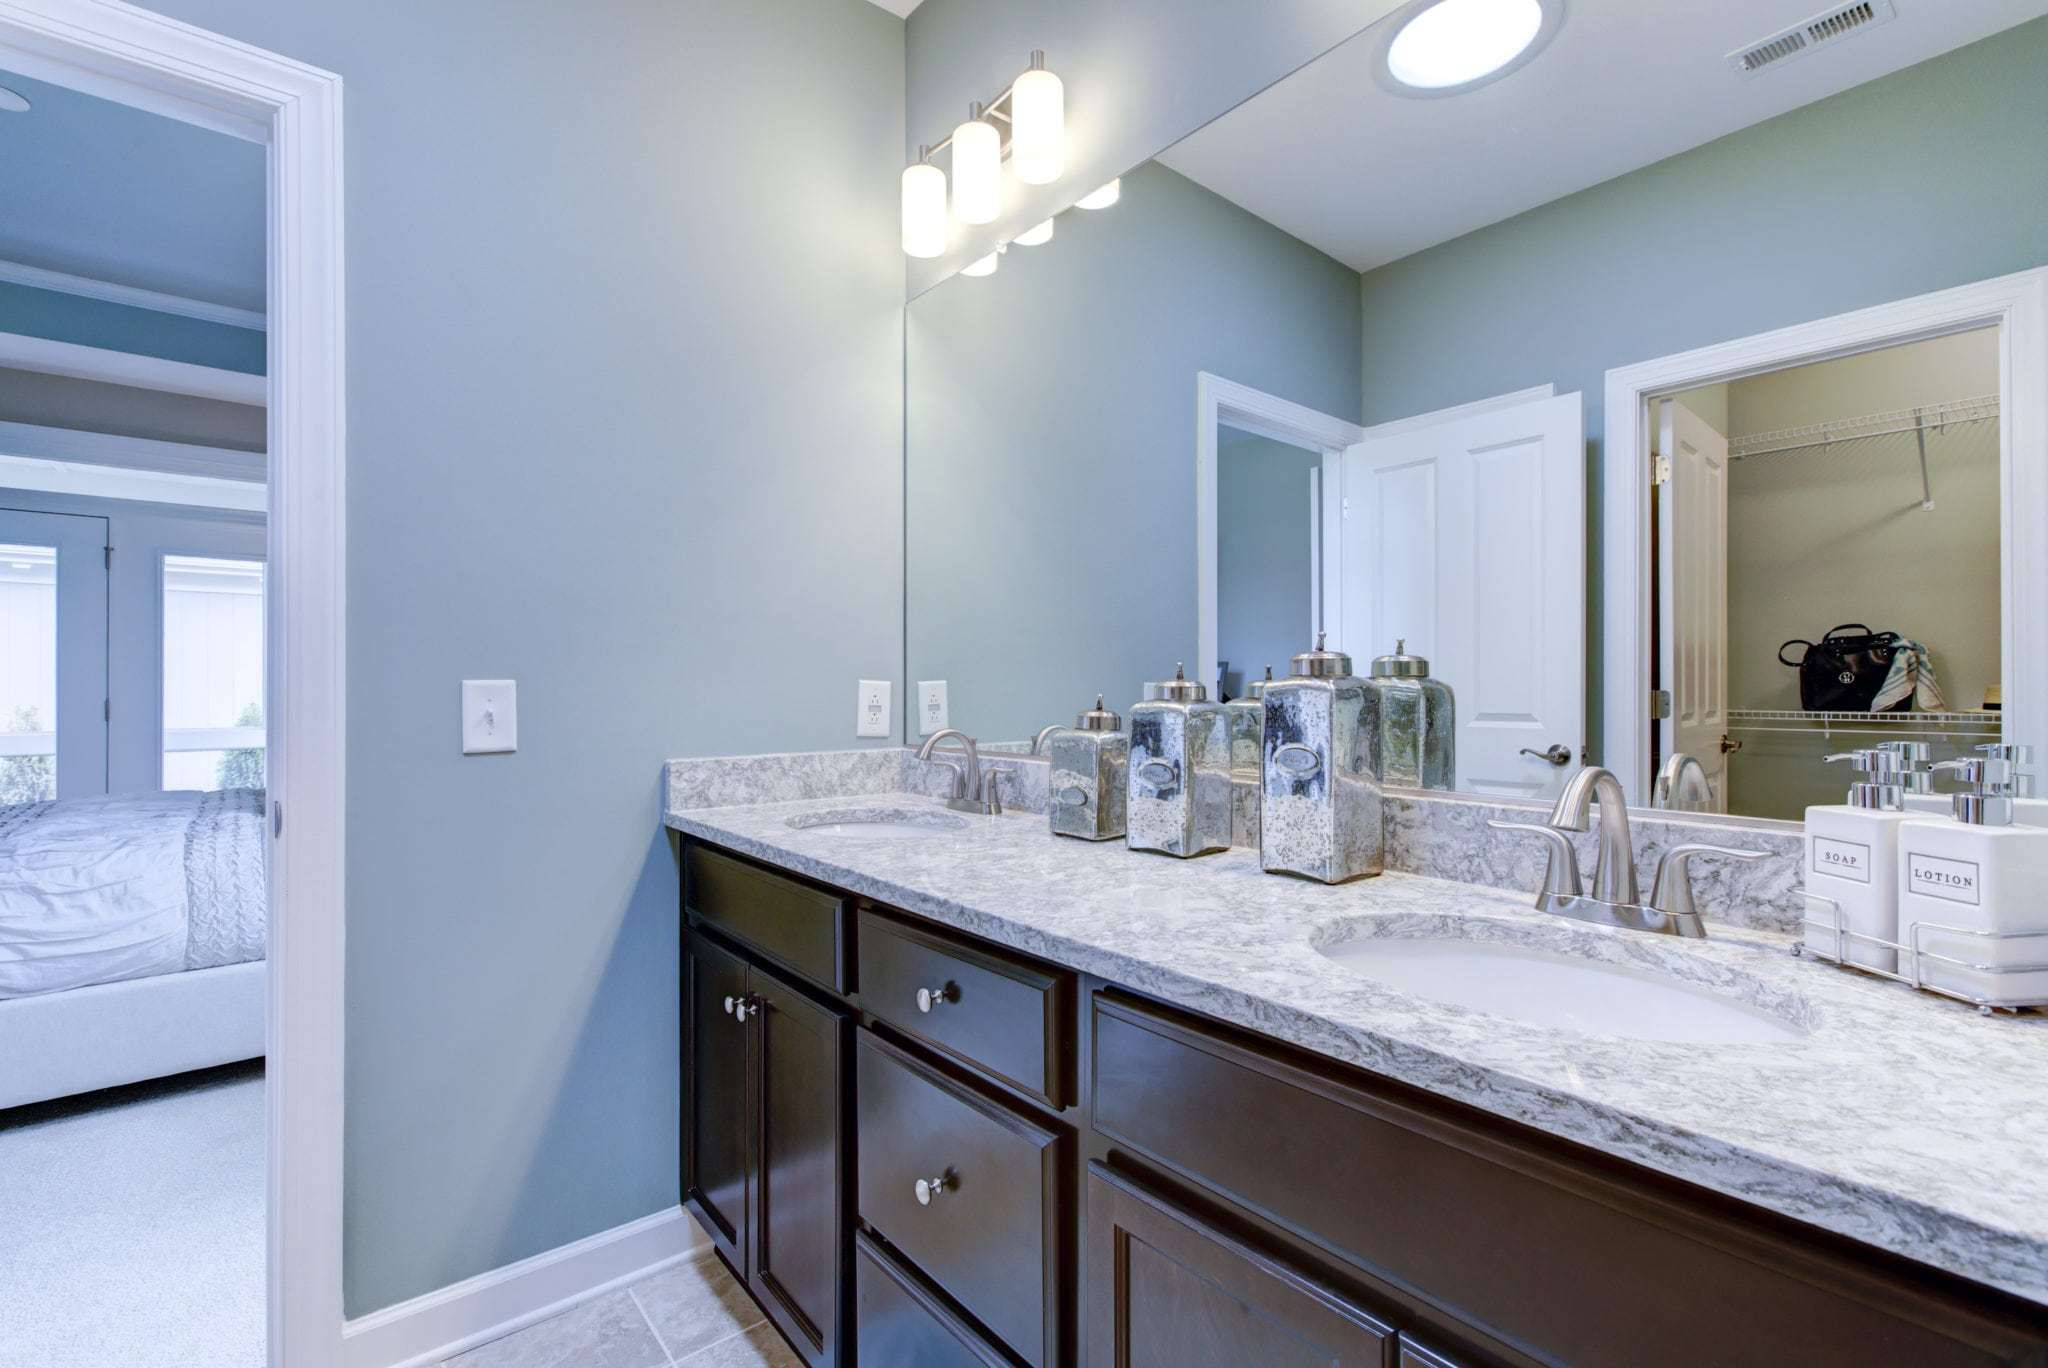 Bathroom featured in the Palazzo By Epcon Communities in Charlotte, NC